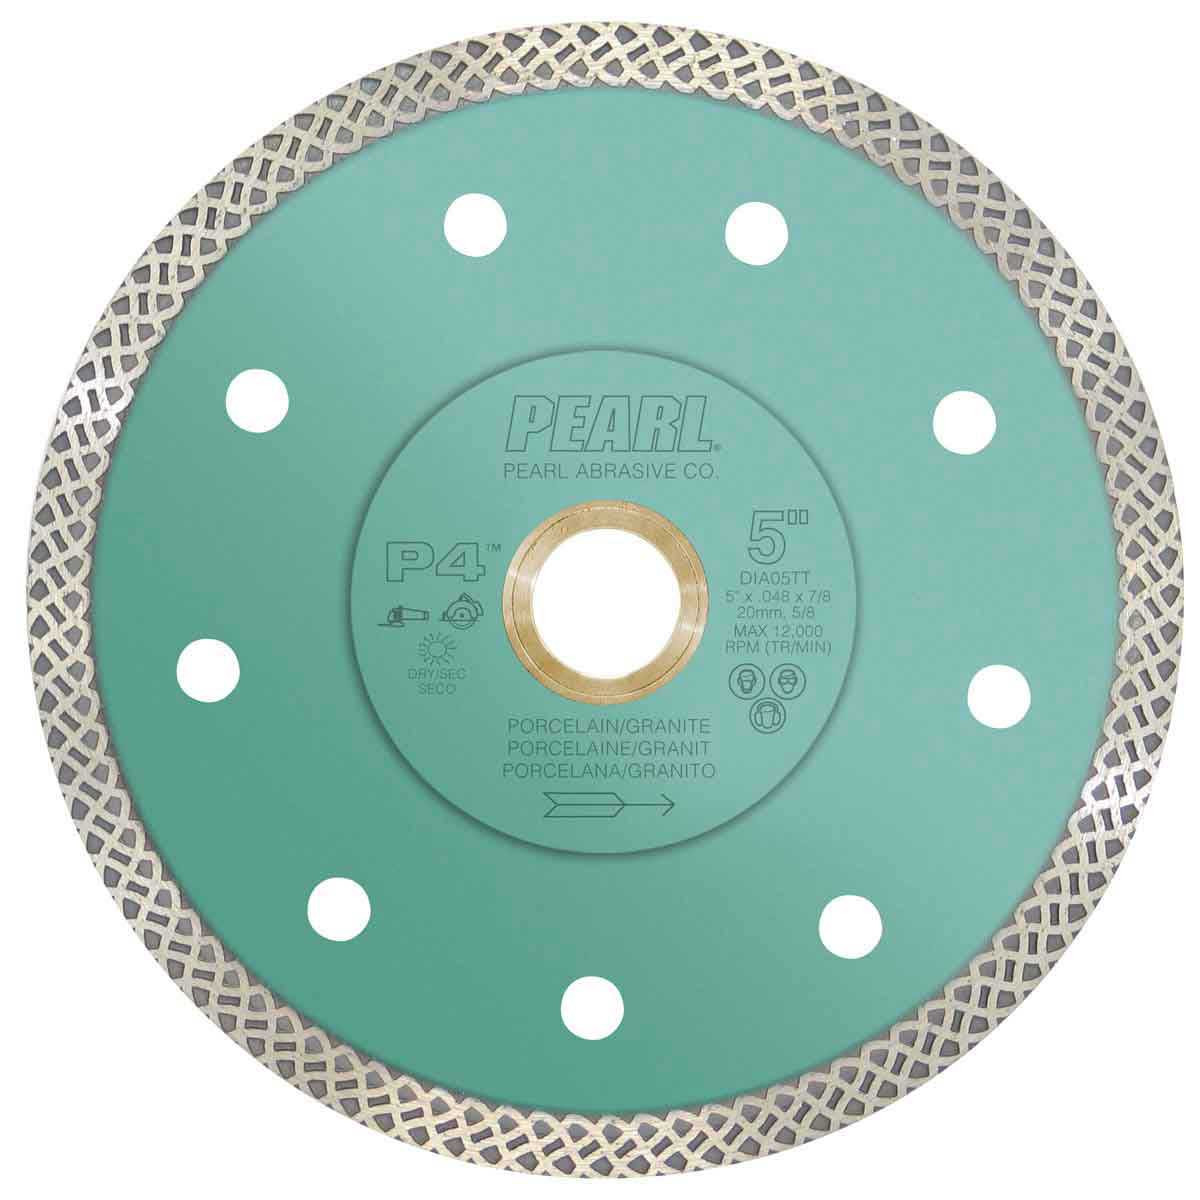 Pearl Abrasive ADM 10 inch Blade